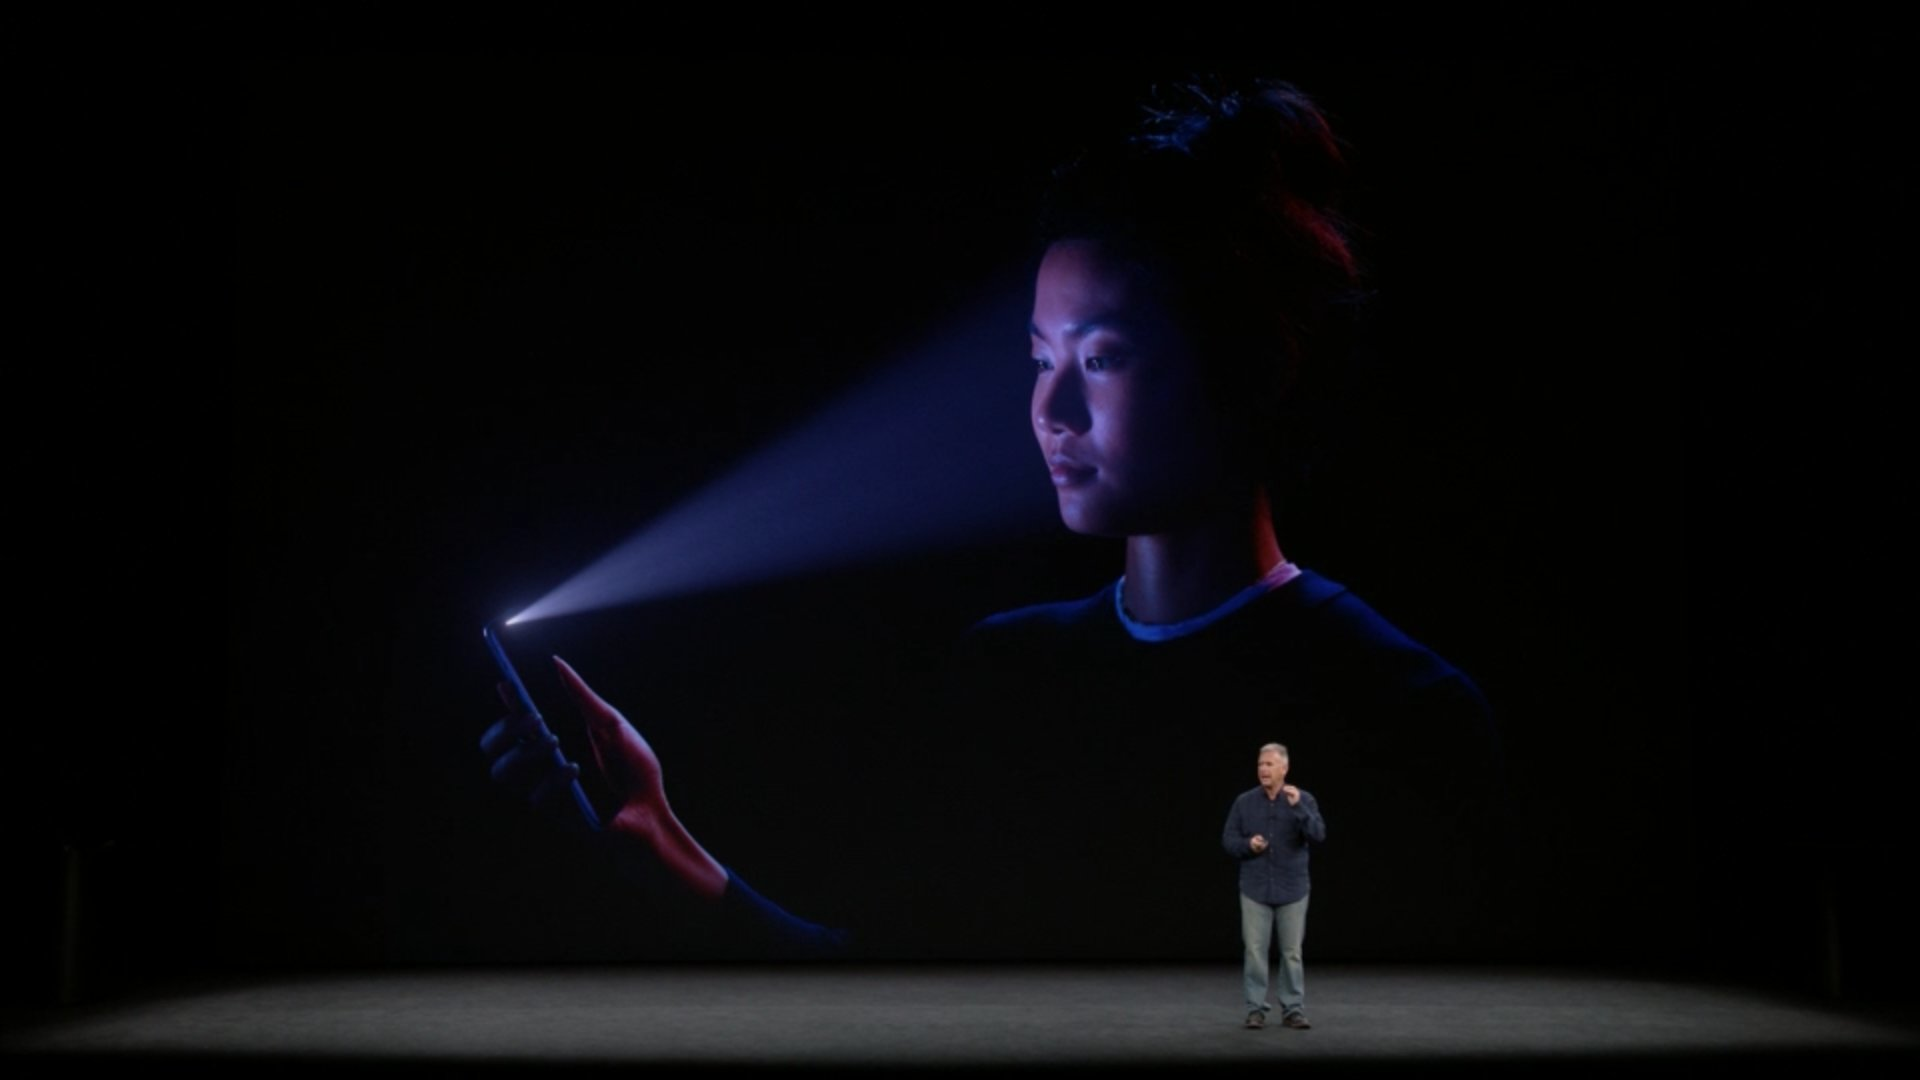 Facial recognition will, of course, work in the dark as well to unlock the iPhone X. #AppleEvent https://t.co/dBC31DOk00